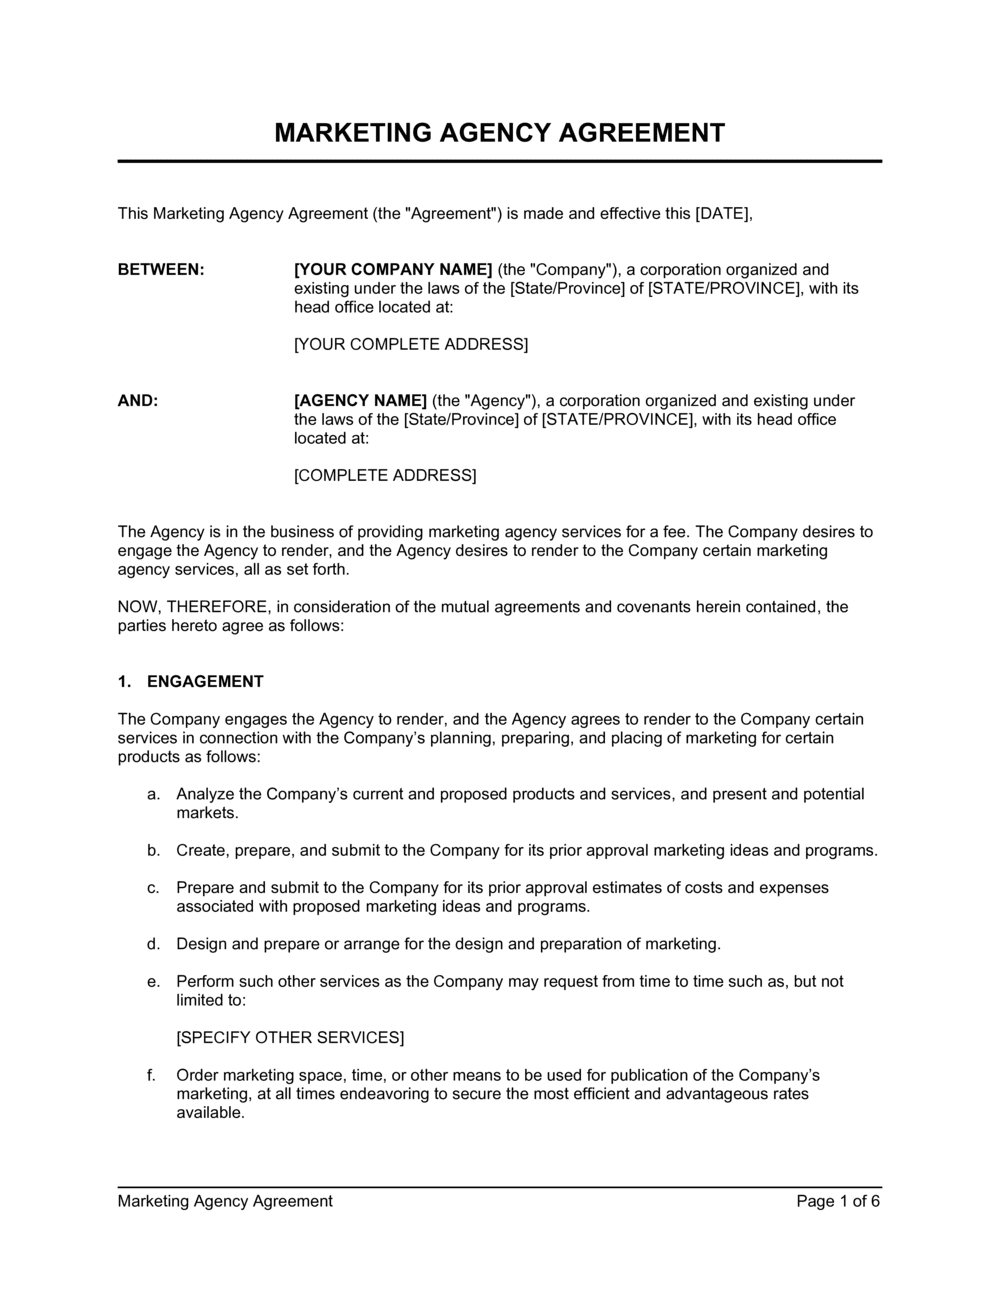 Business-in-a-Box's Marketing Agency Agreement Template